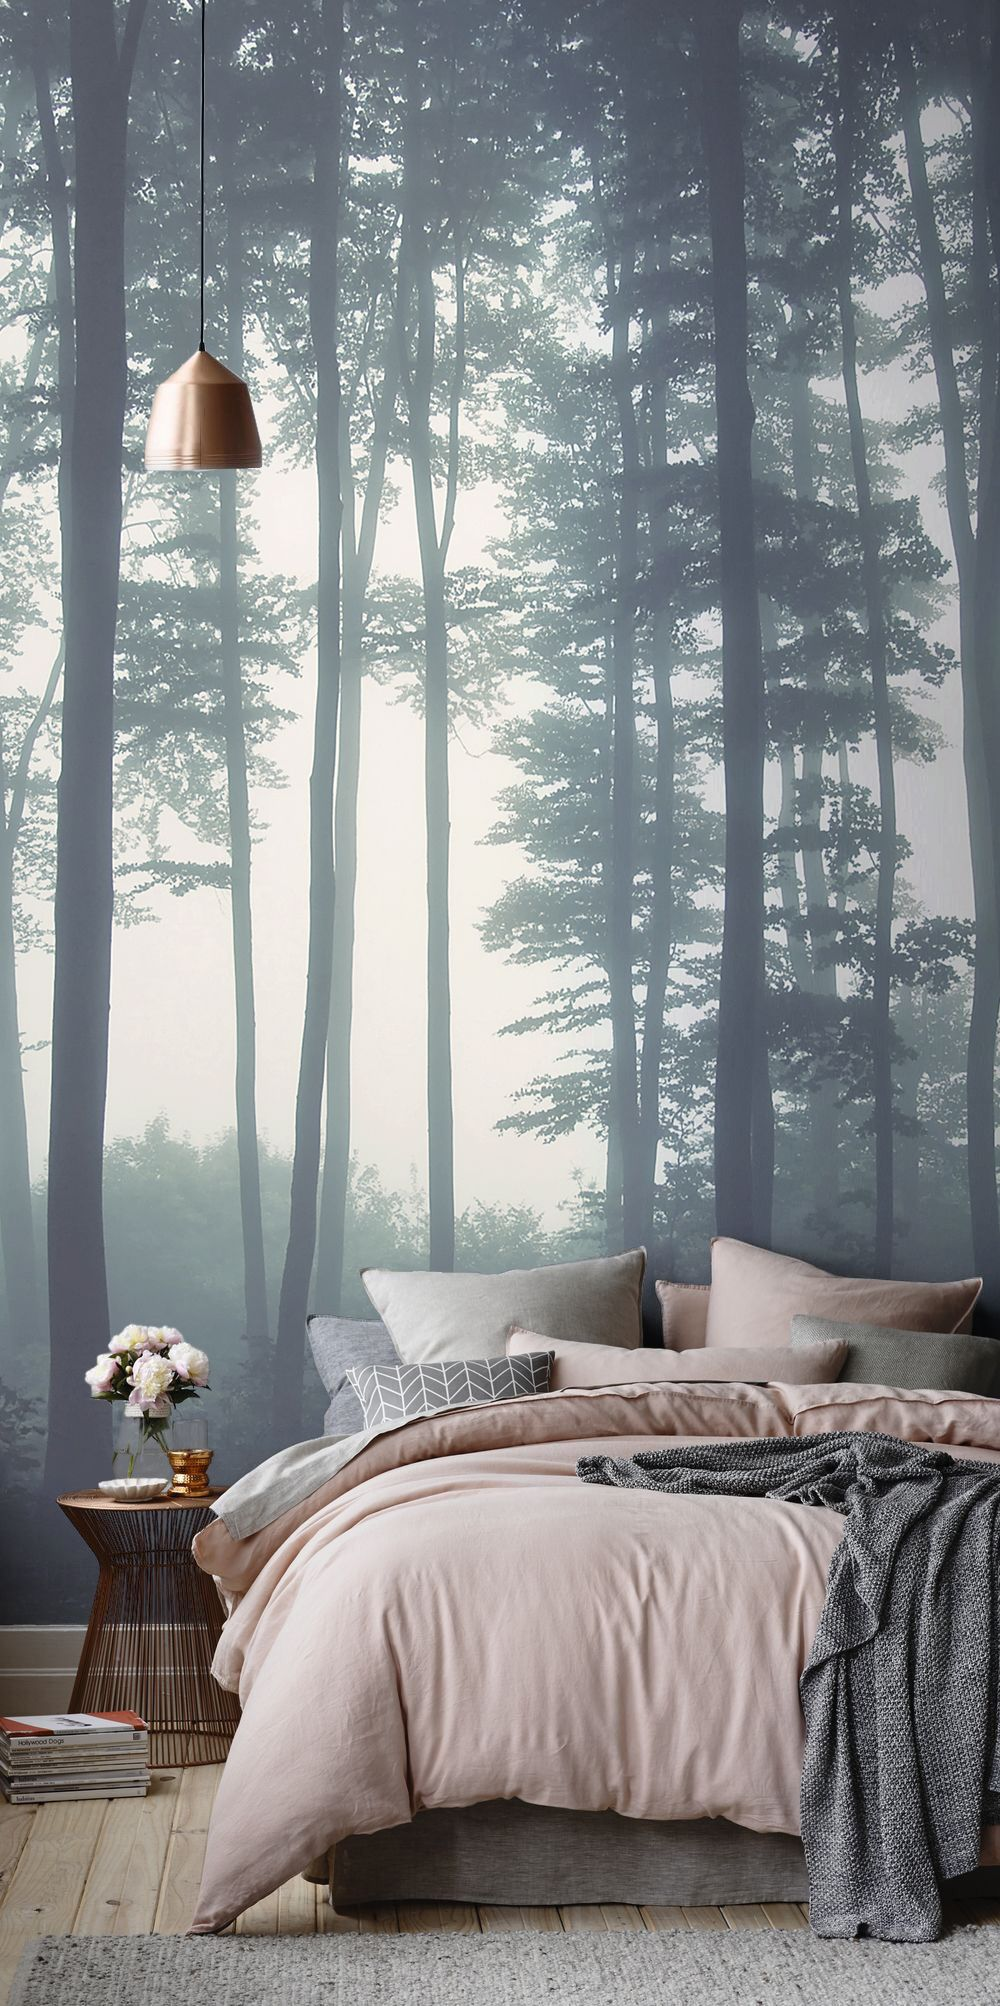 Astonishing Sea Of Trees Forest Mural Wallpaper Muralswallpaper Co Uk Download Free Architecture Designs Intelgarnamadebymaigaardcom